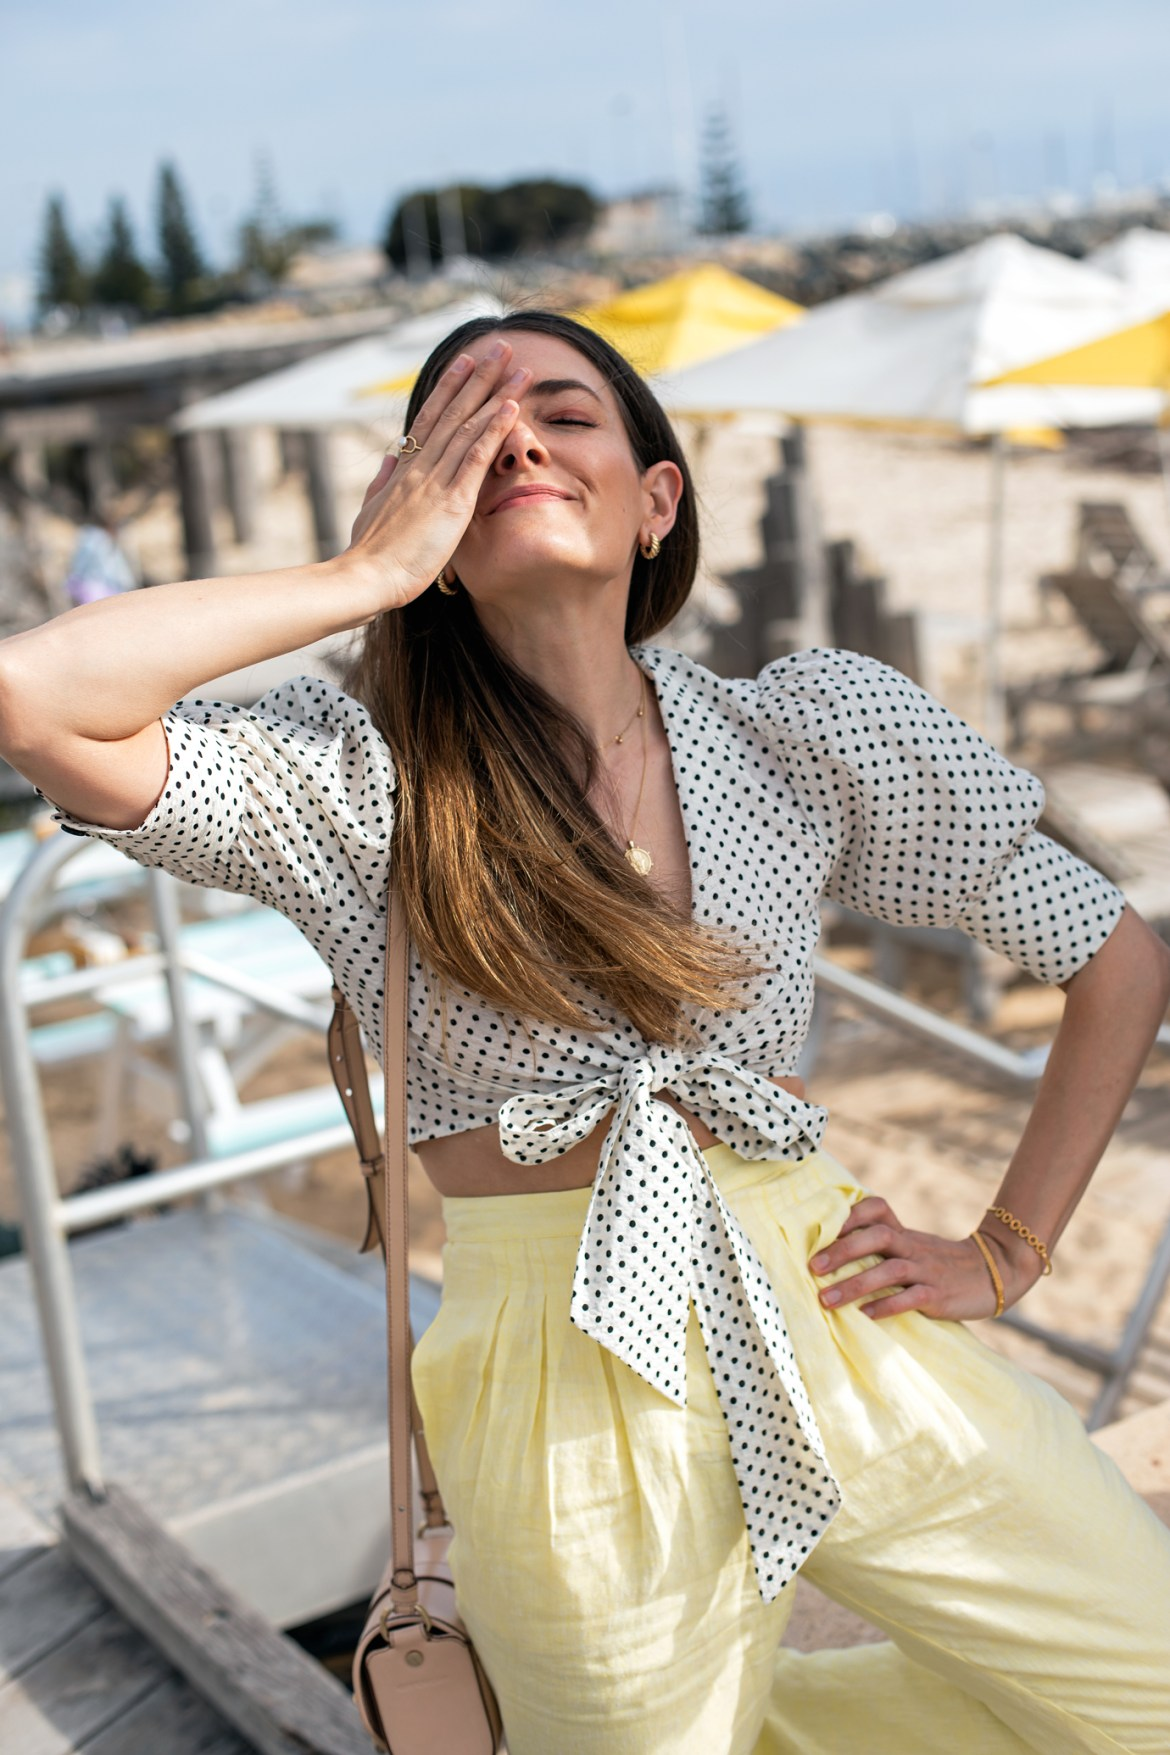 pastel yellow pants and a cute polka dot crop top outfit idea for your sunny vacation